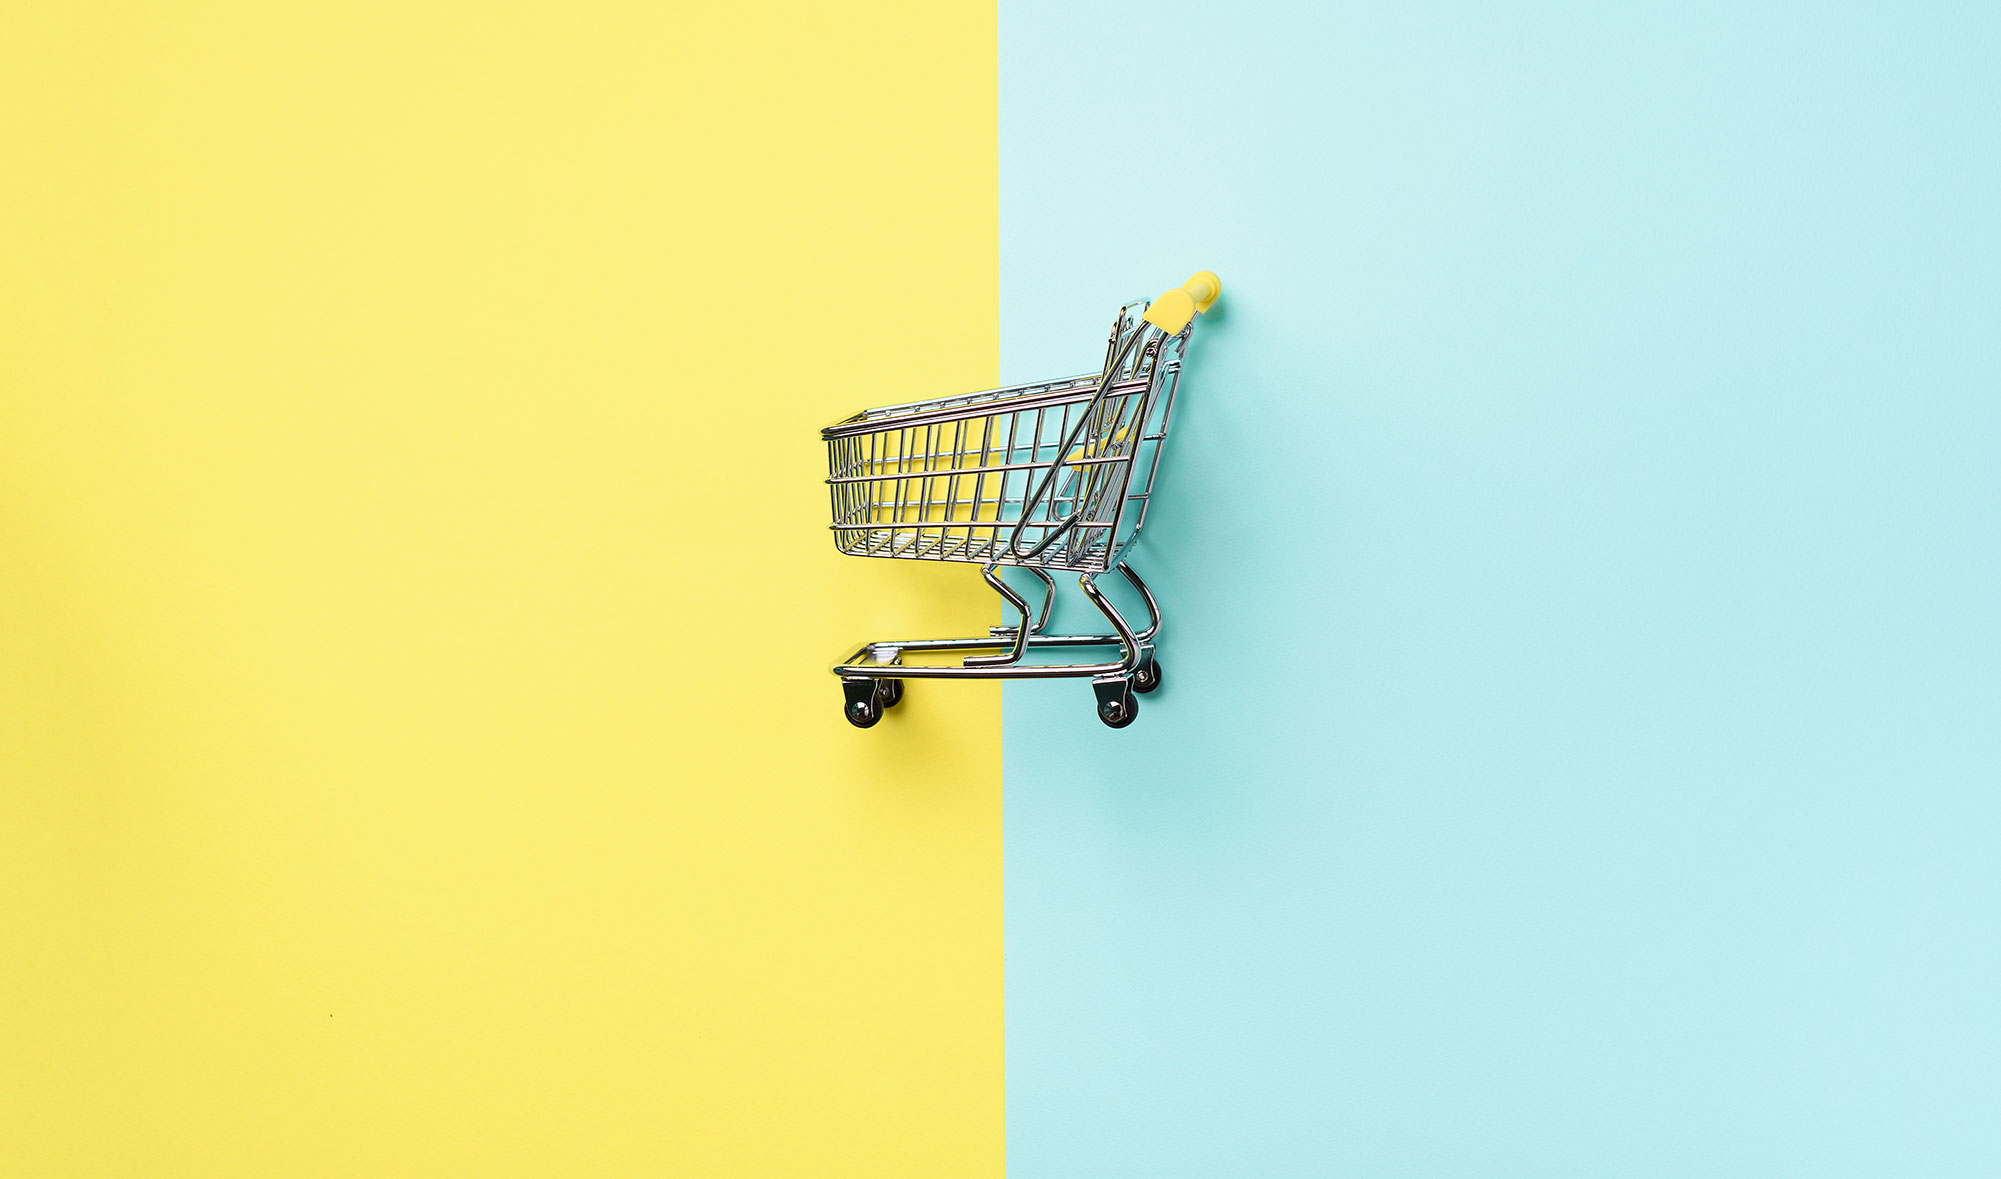 shopping-cart-on-blue-and-yellow-background-minima-ARBKQCB.jpg